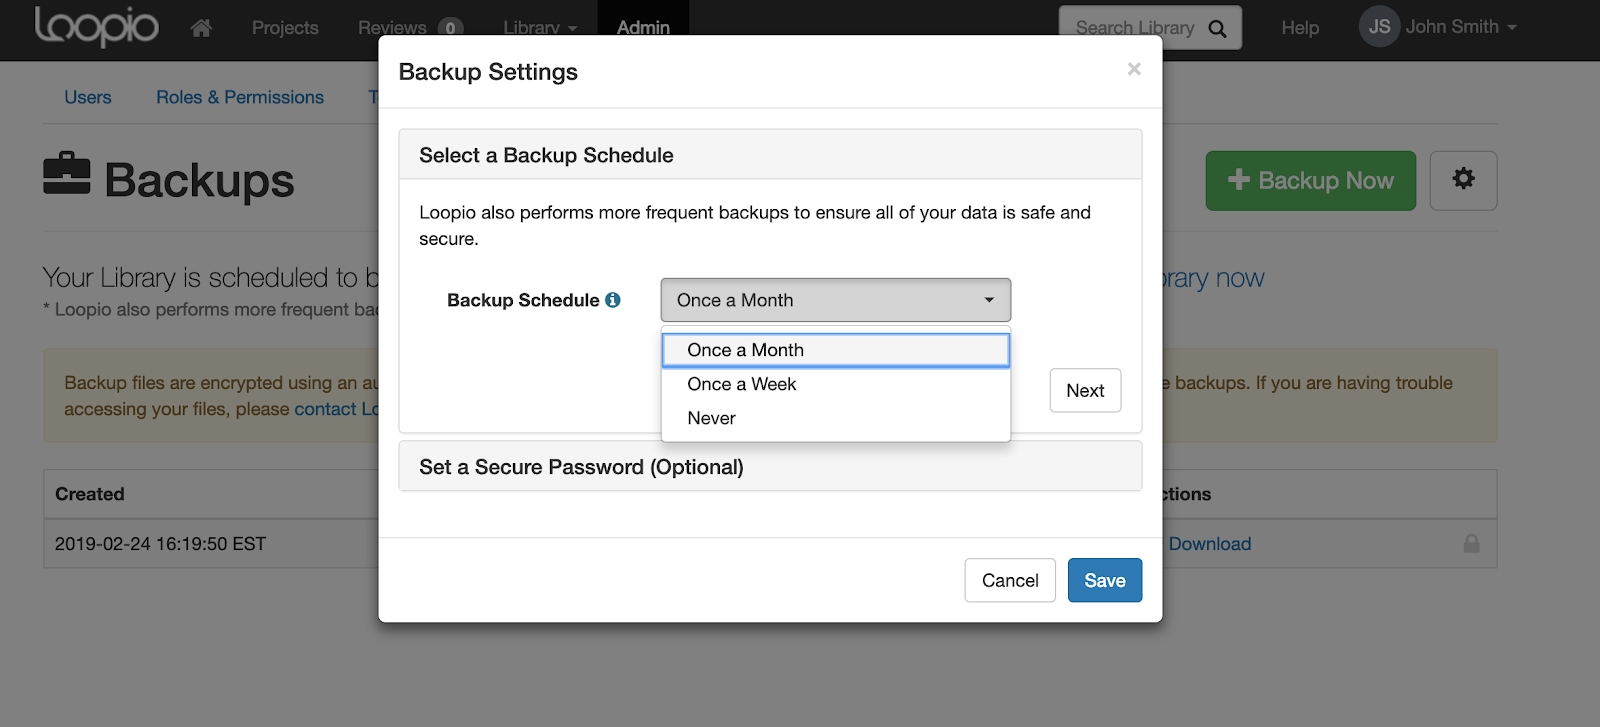 A_screenshot_of_the_Backup_Settings_modal_with_the_Backup_Schedule_dropdown_selected.png